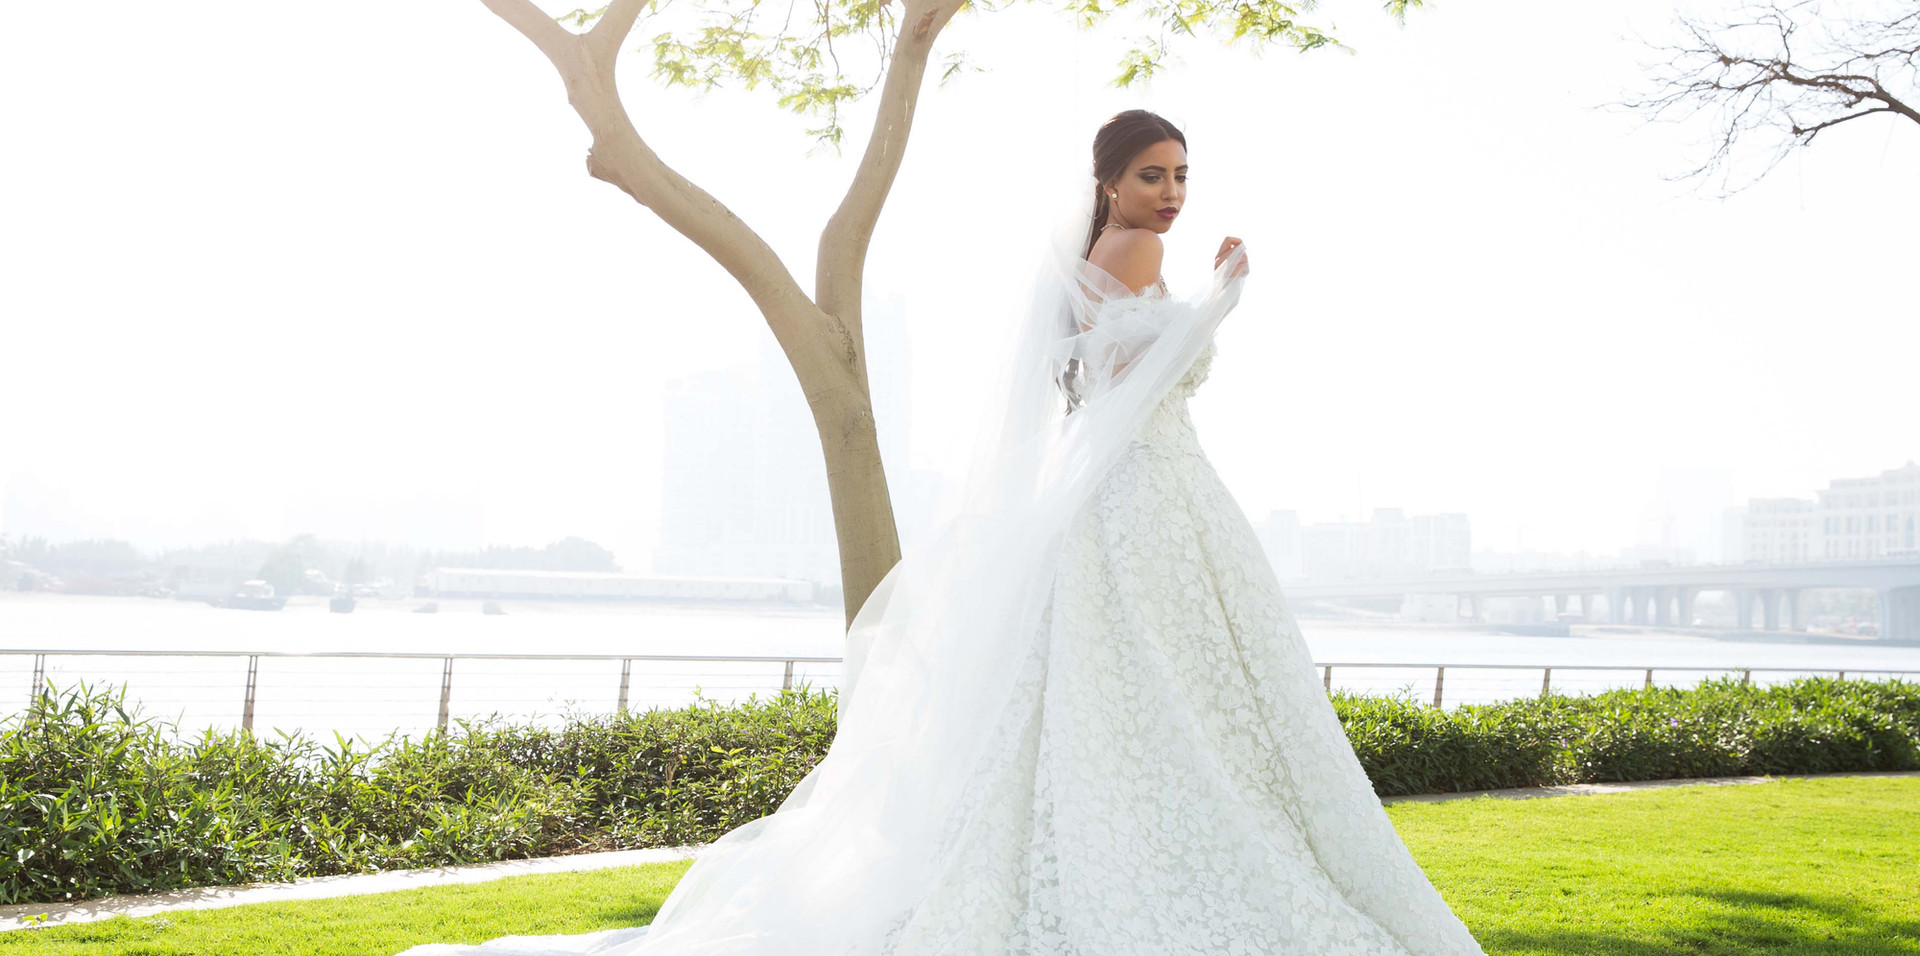 Wedding shoot at the Promenade Bay